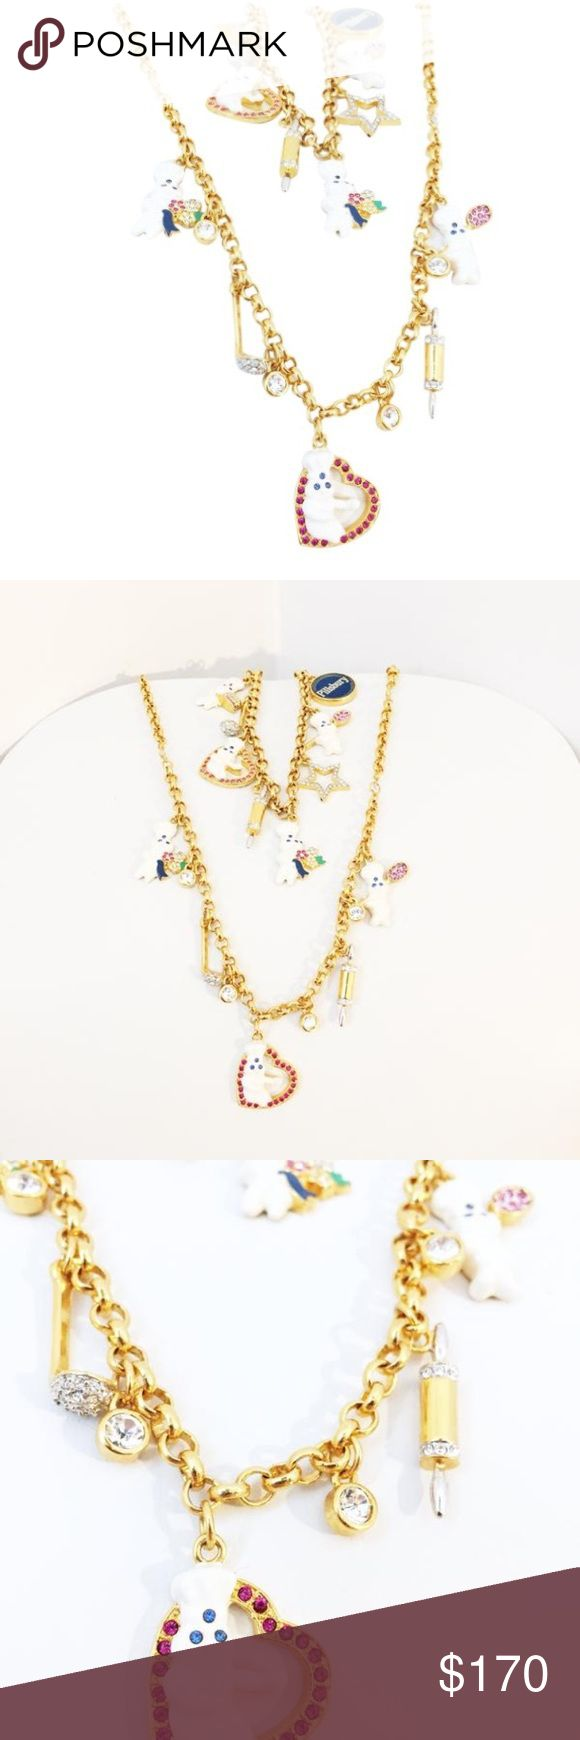 Danbury Mint limited pillsbury dough charm set Limited edition 24k gold plated Danbury mint pillsbury dough boy charm bracelet and necklace set danbury mint Jewelry Necklaces